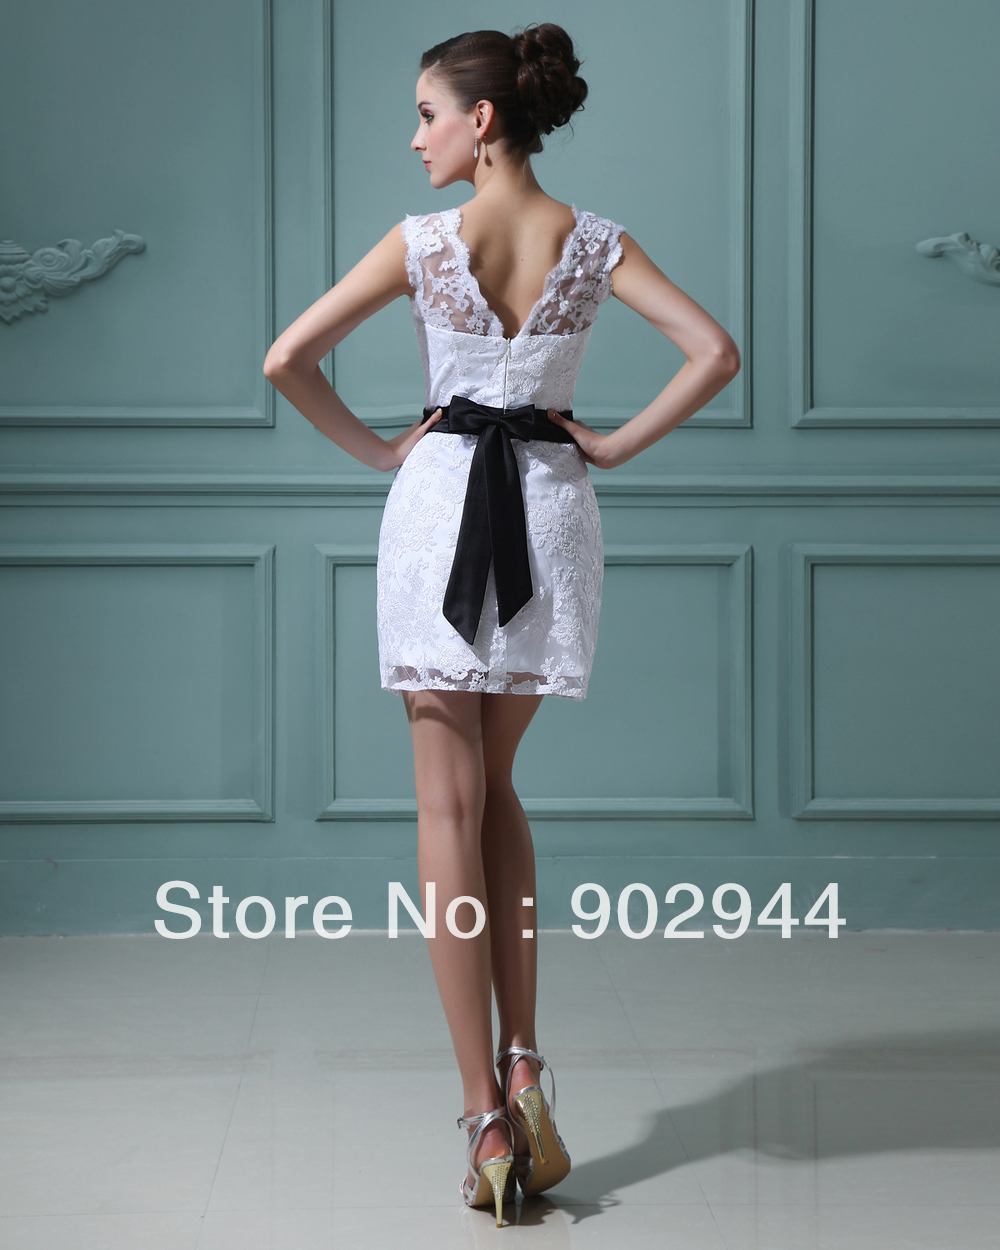 black and white lace dress hdbdpd9